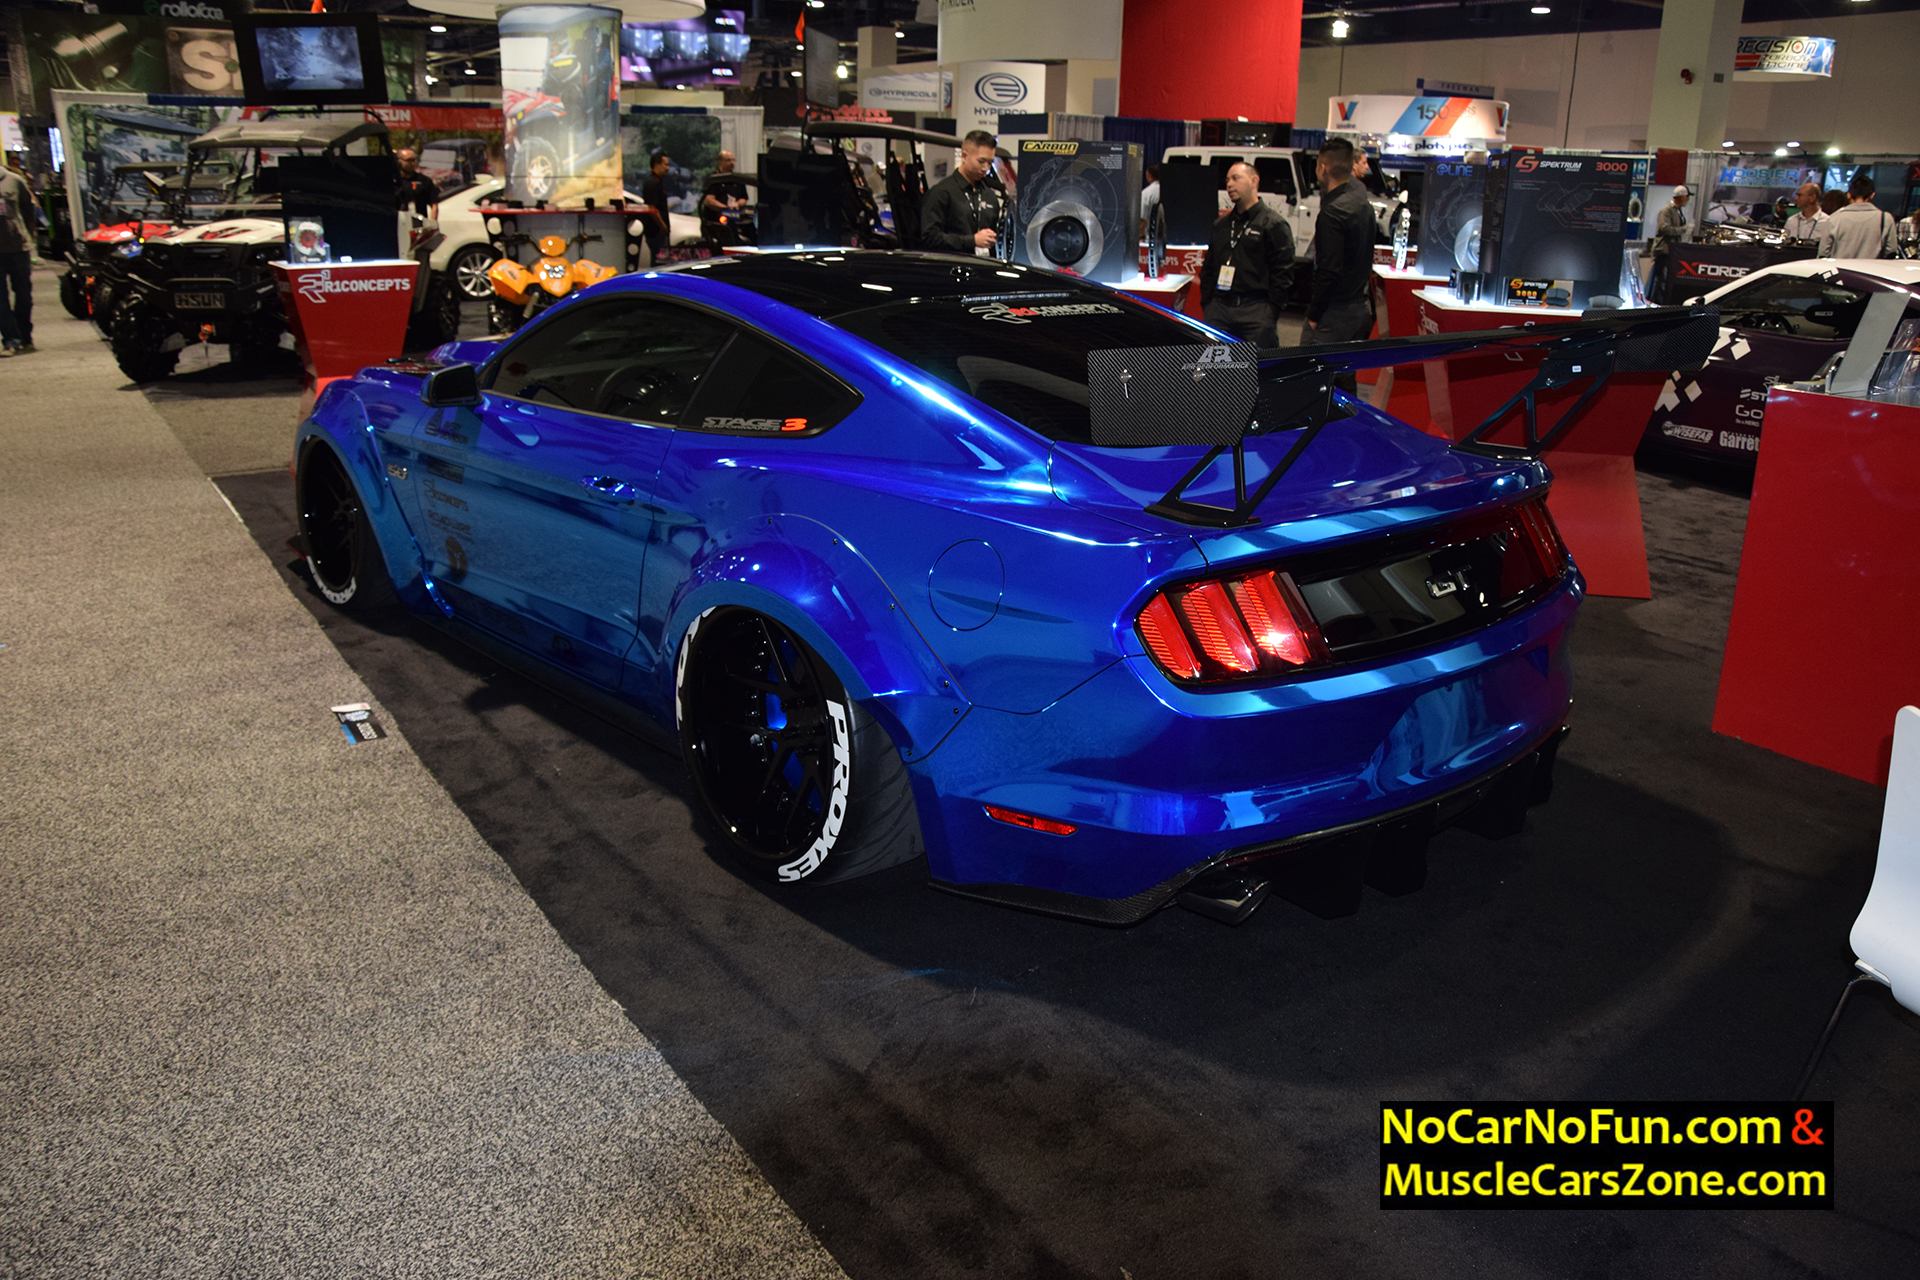 2016 Ford Mustang GT With Vortech Supercharger \u0026 Toyo Tires - 2015 SEMA  Motor Show